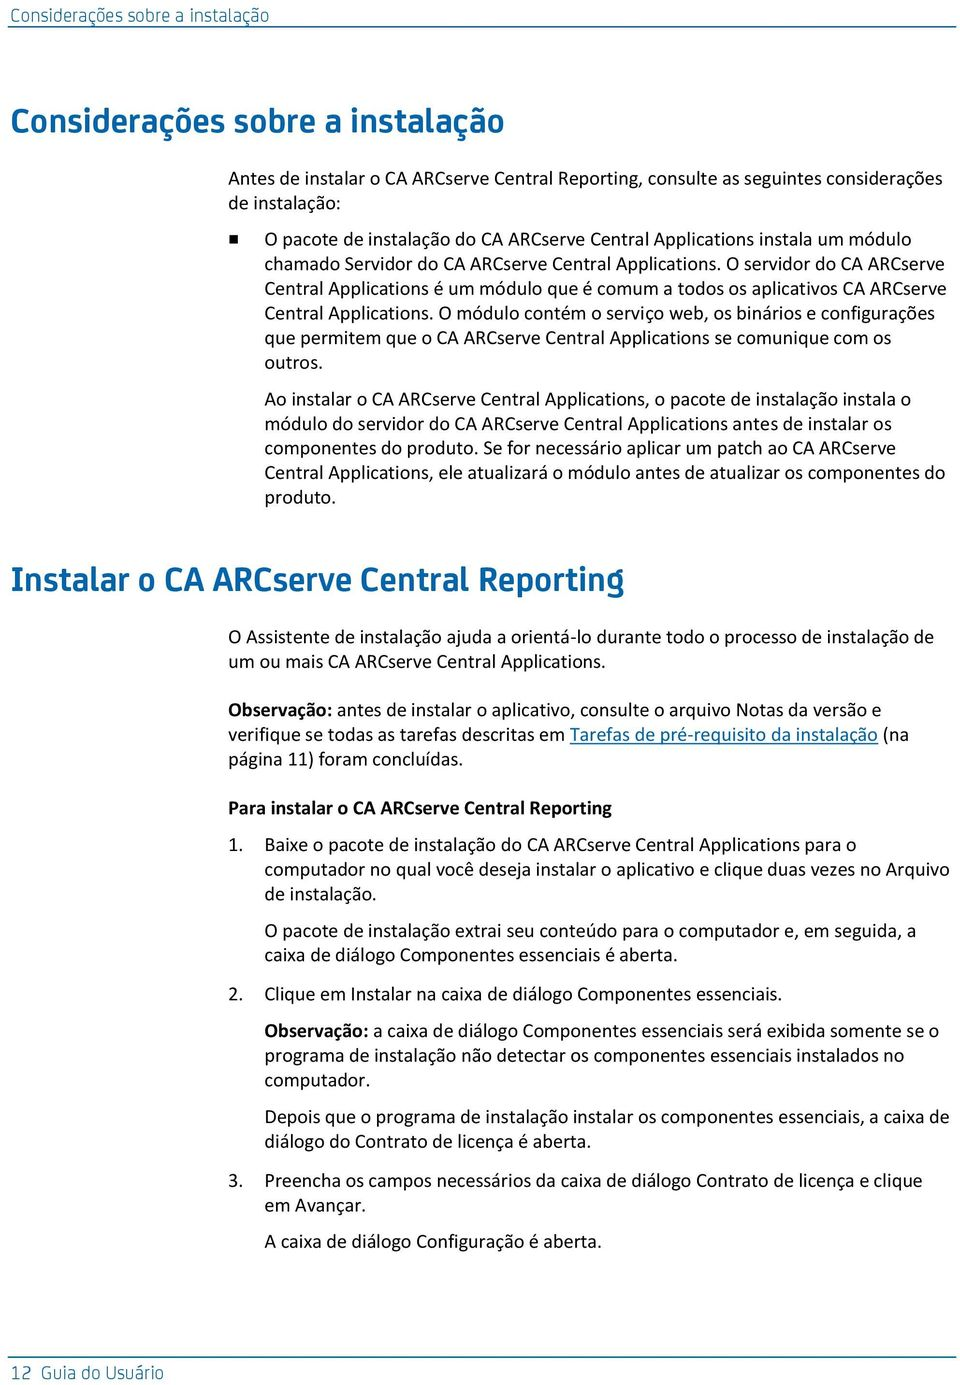 O servidor do CA ARCserve Central Applications é um módulo que é comum a todos os aplicativos CA ARCserve Central Applications.